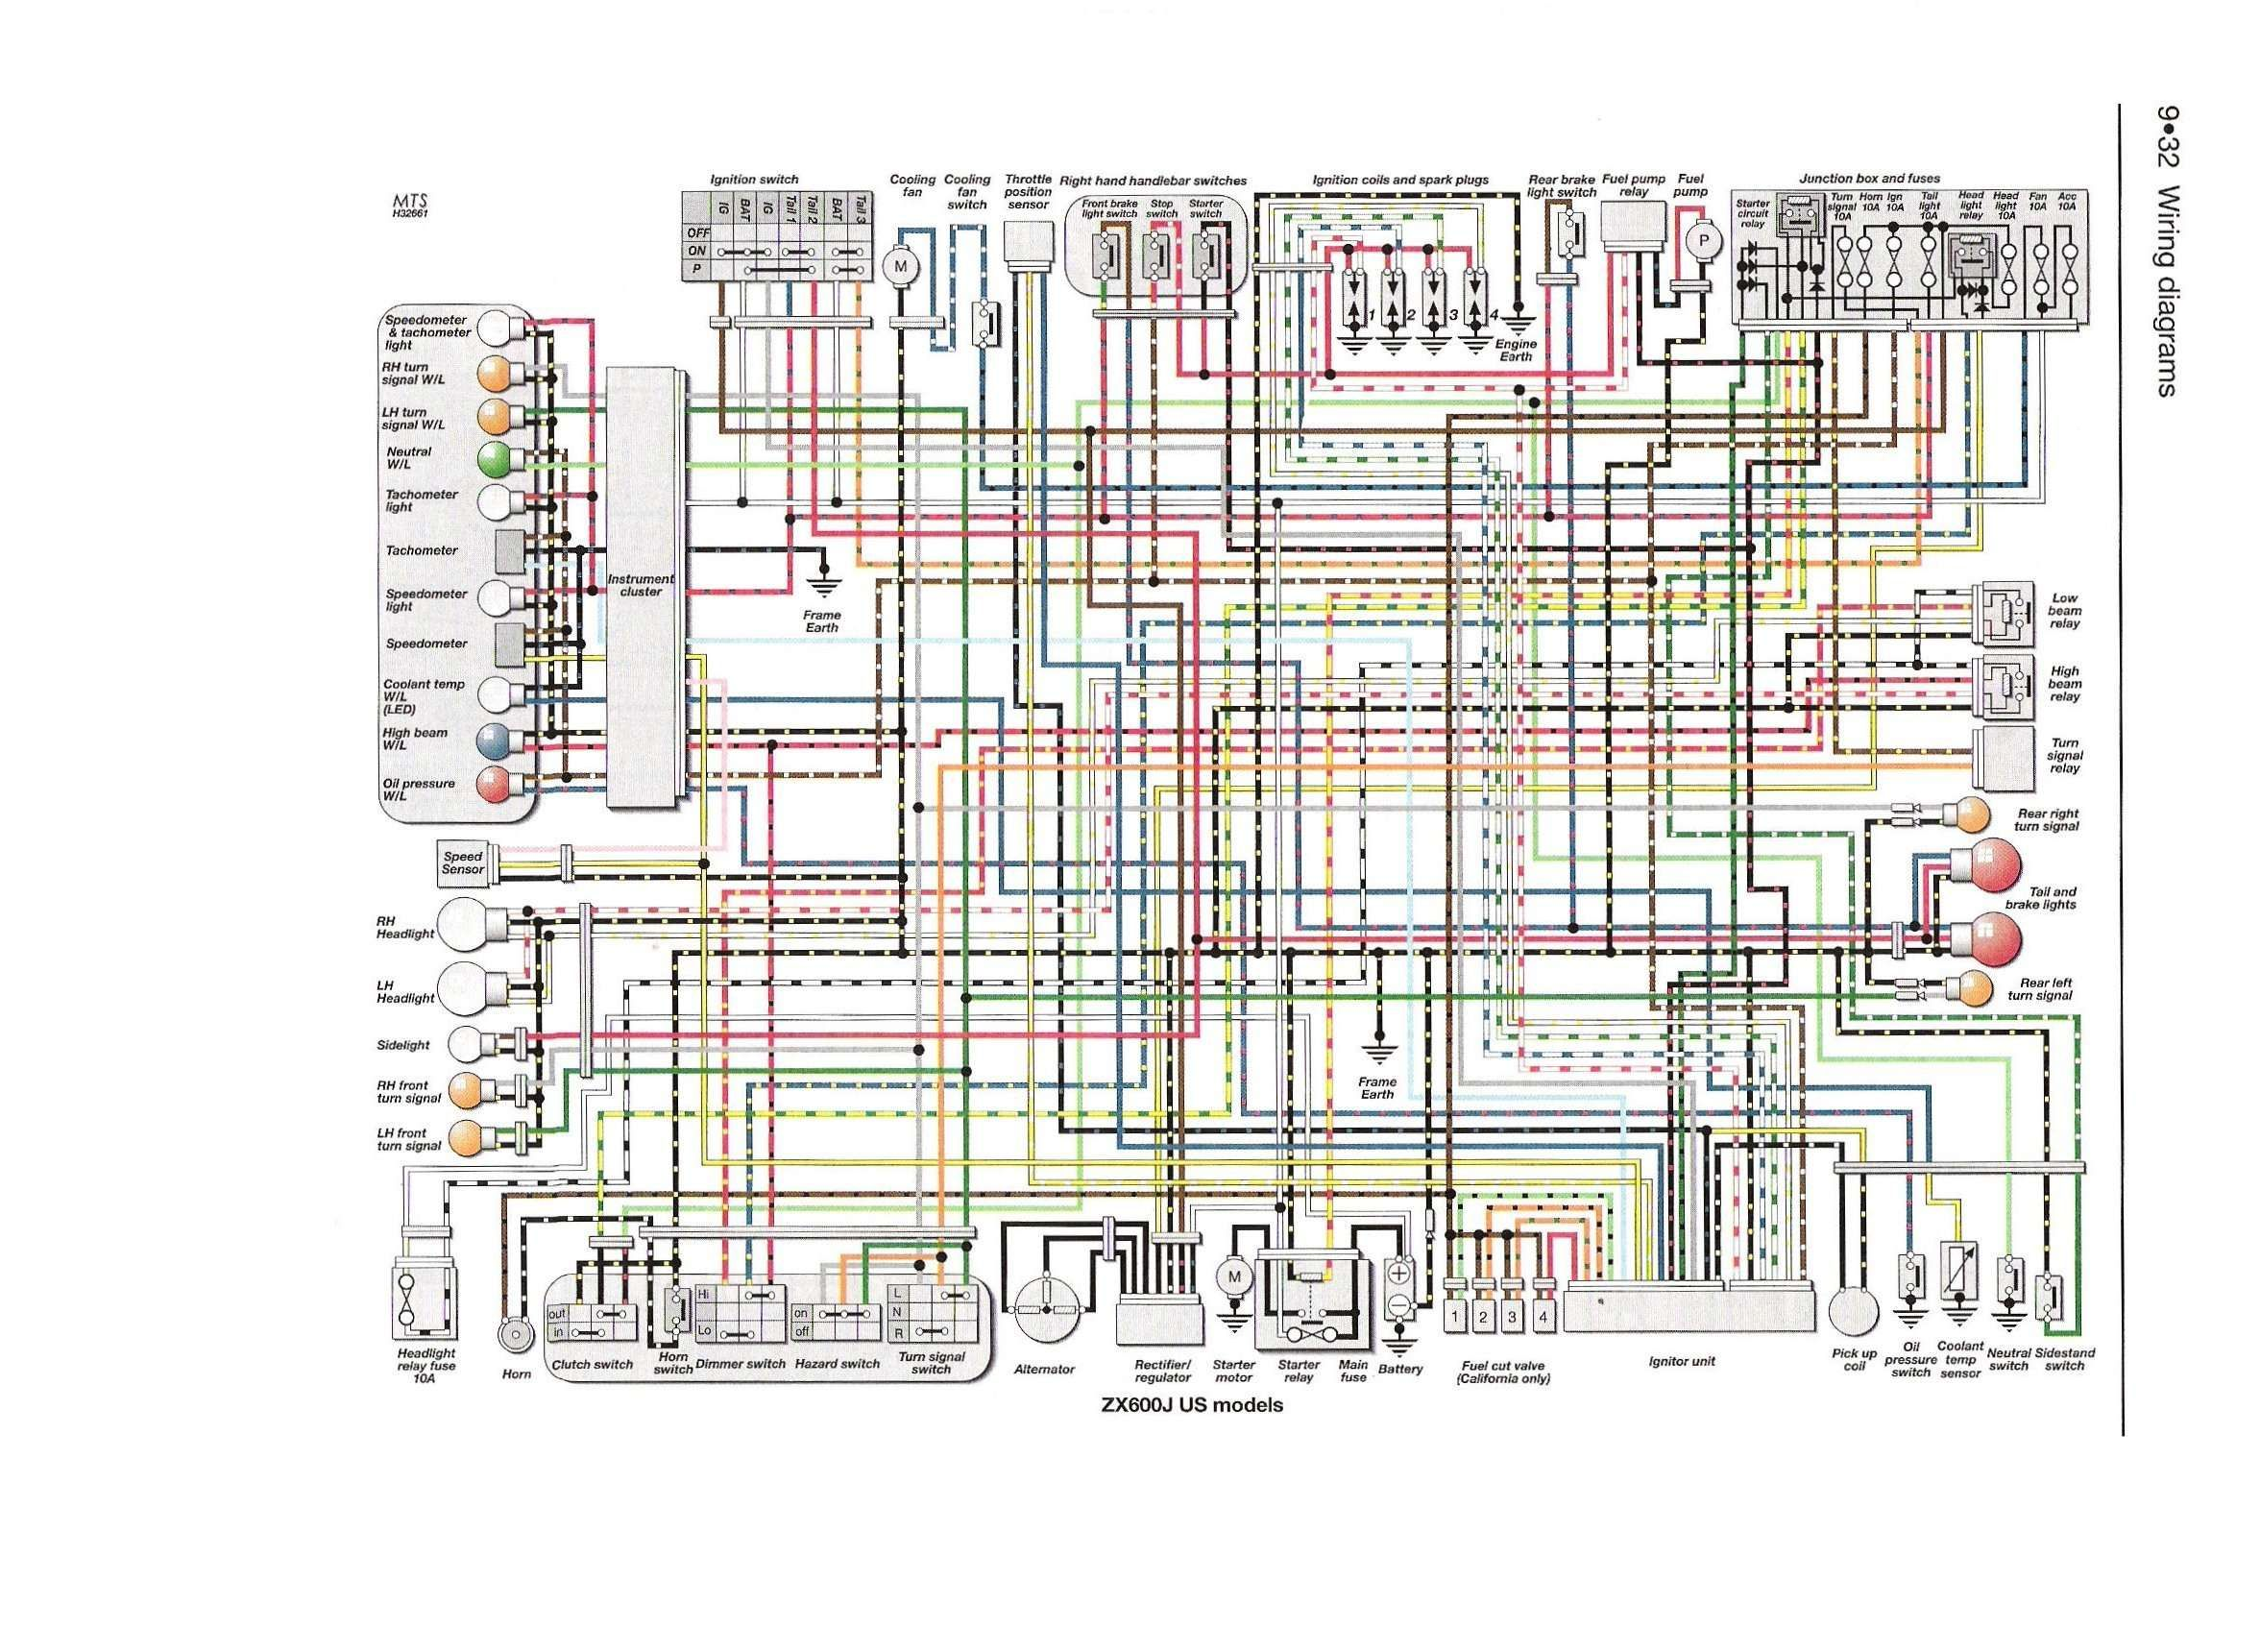 medium resolution of zx6r engine diagram wiring diagram database 2004 ninja 636 engine diagram